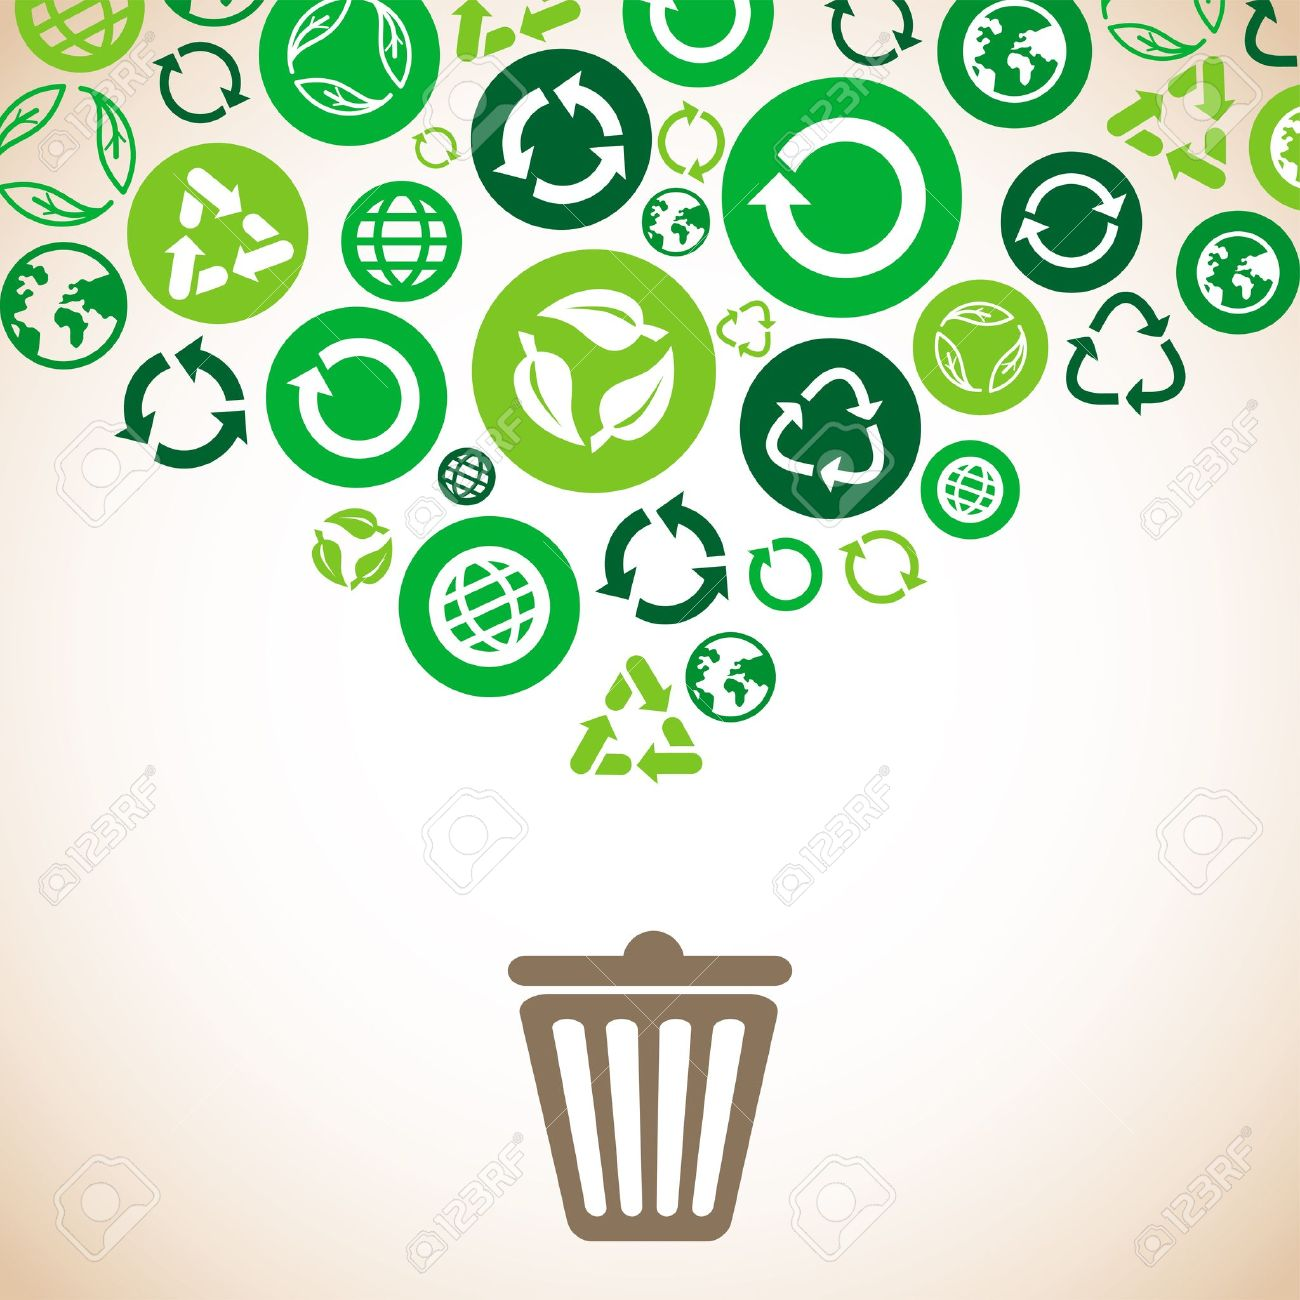 ecology concept with recycle signs and symbols in green color Stock Vector - 19626661